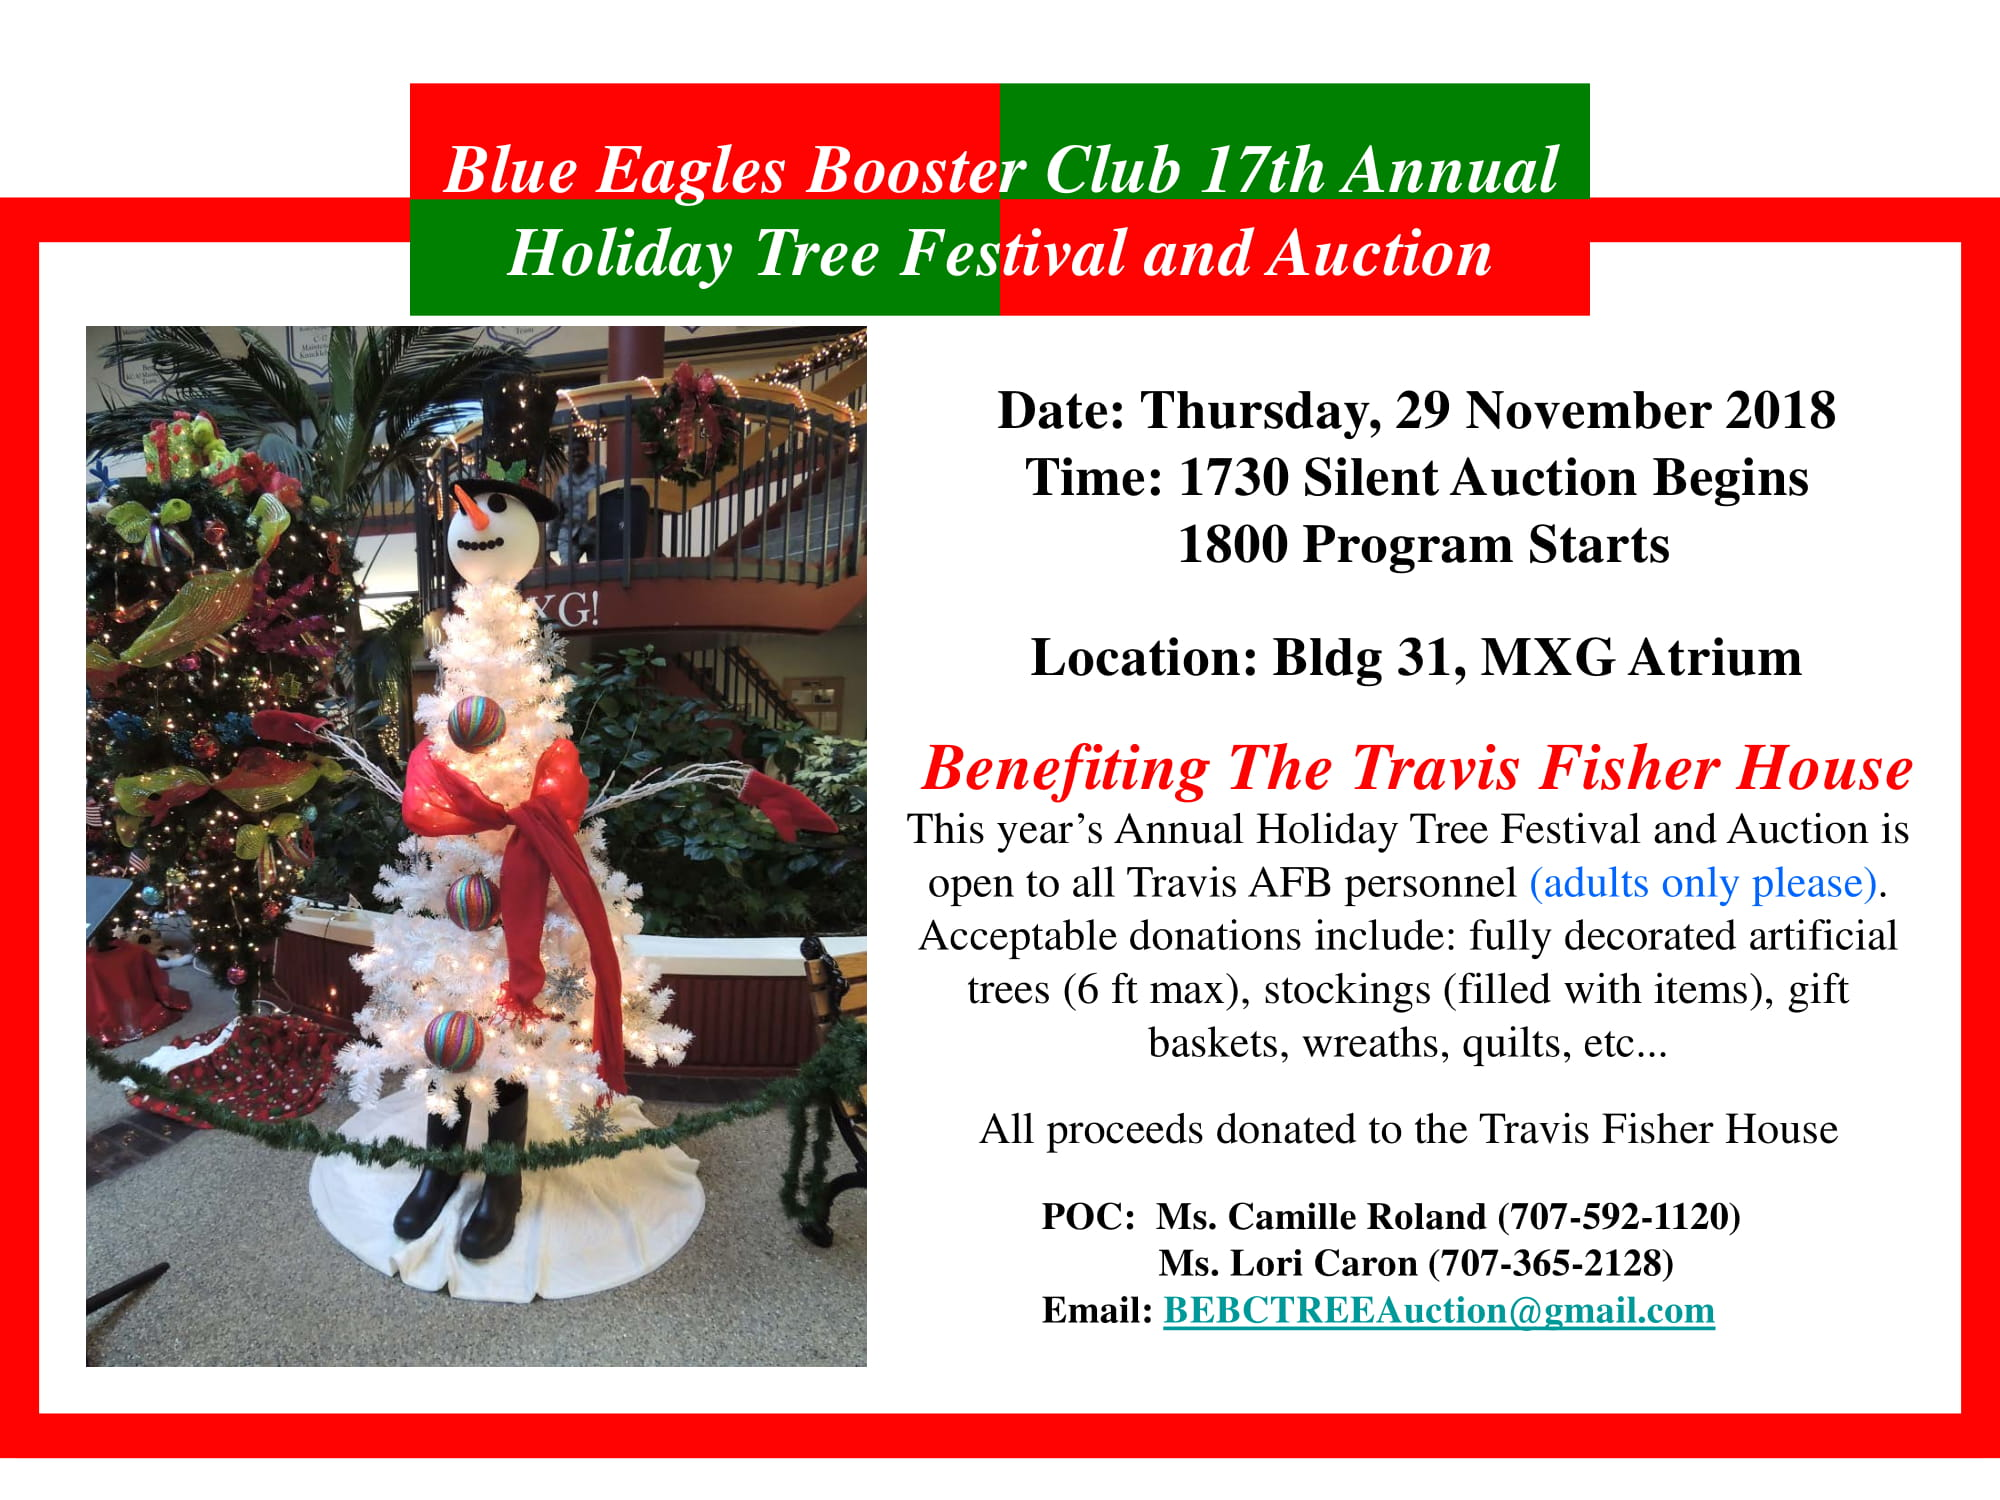 Blue-Eagles-Booster-Club-17-Annual-Holiday-Tree-Festival-and-Auction-2018